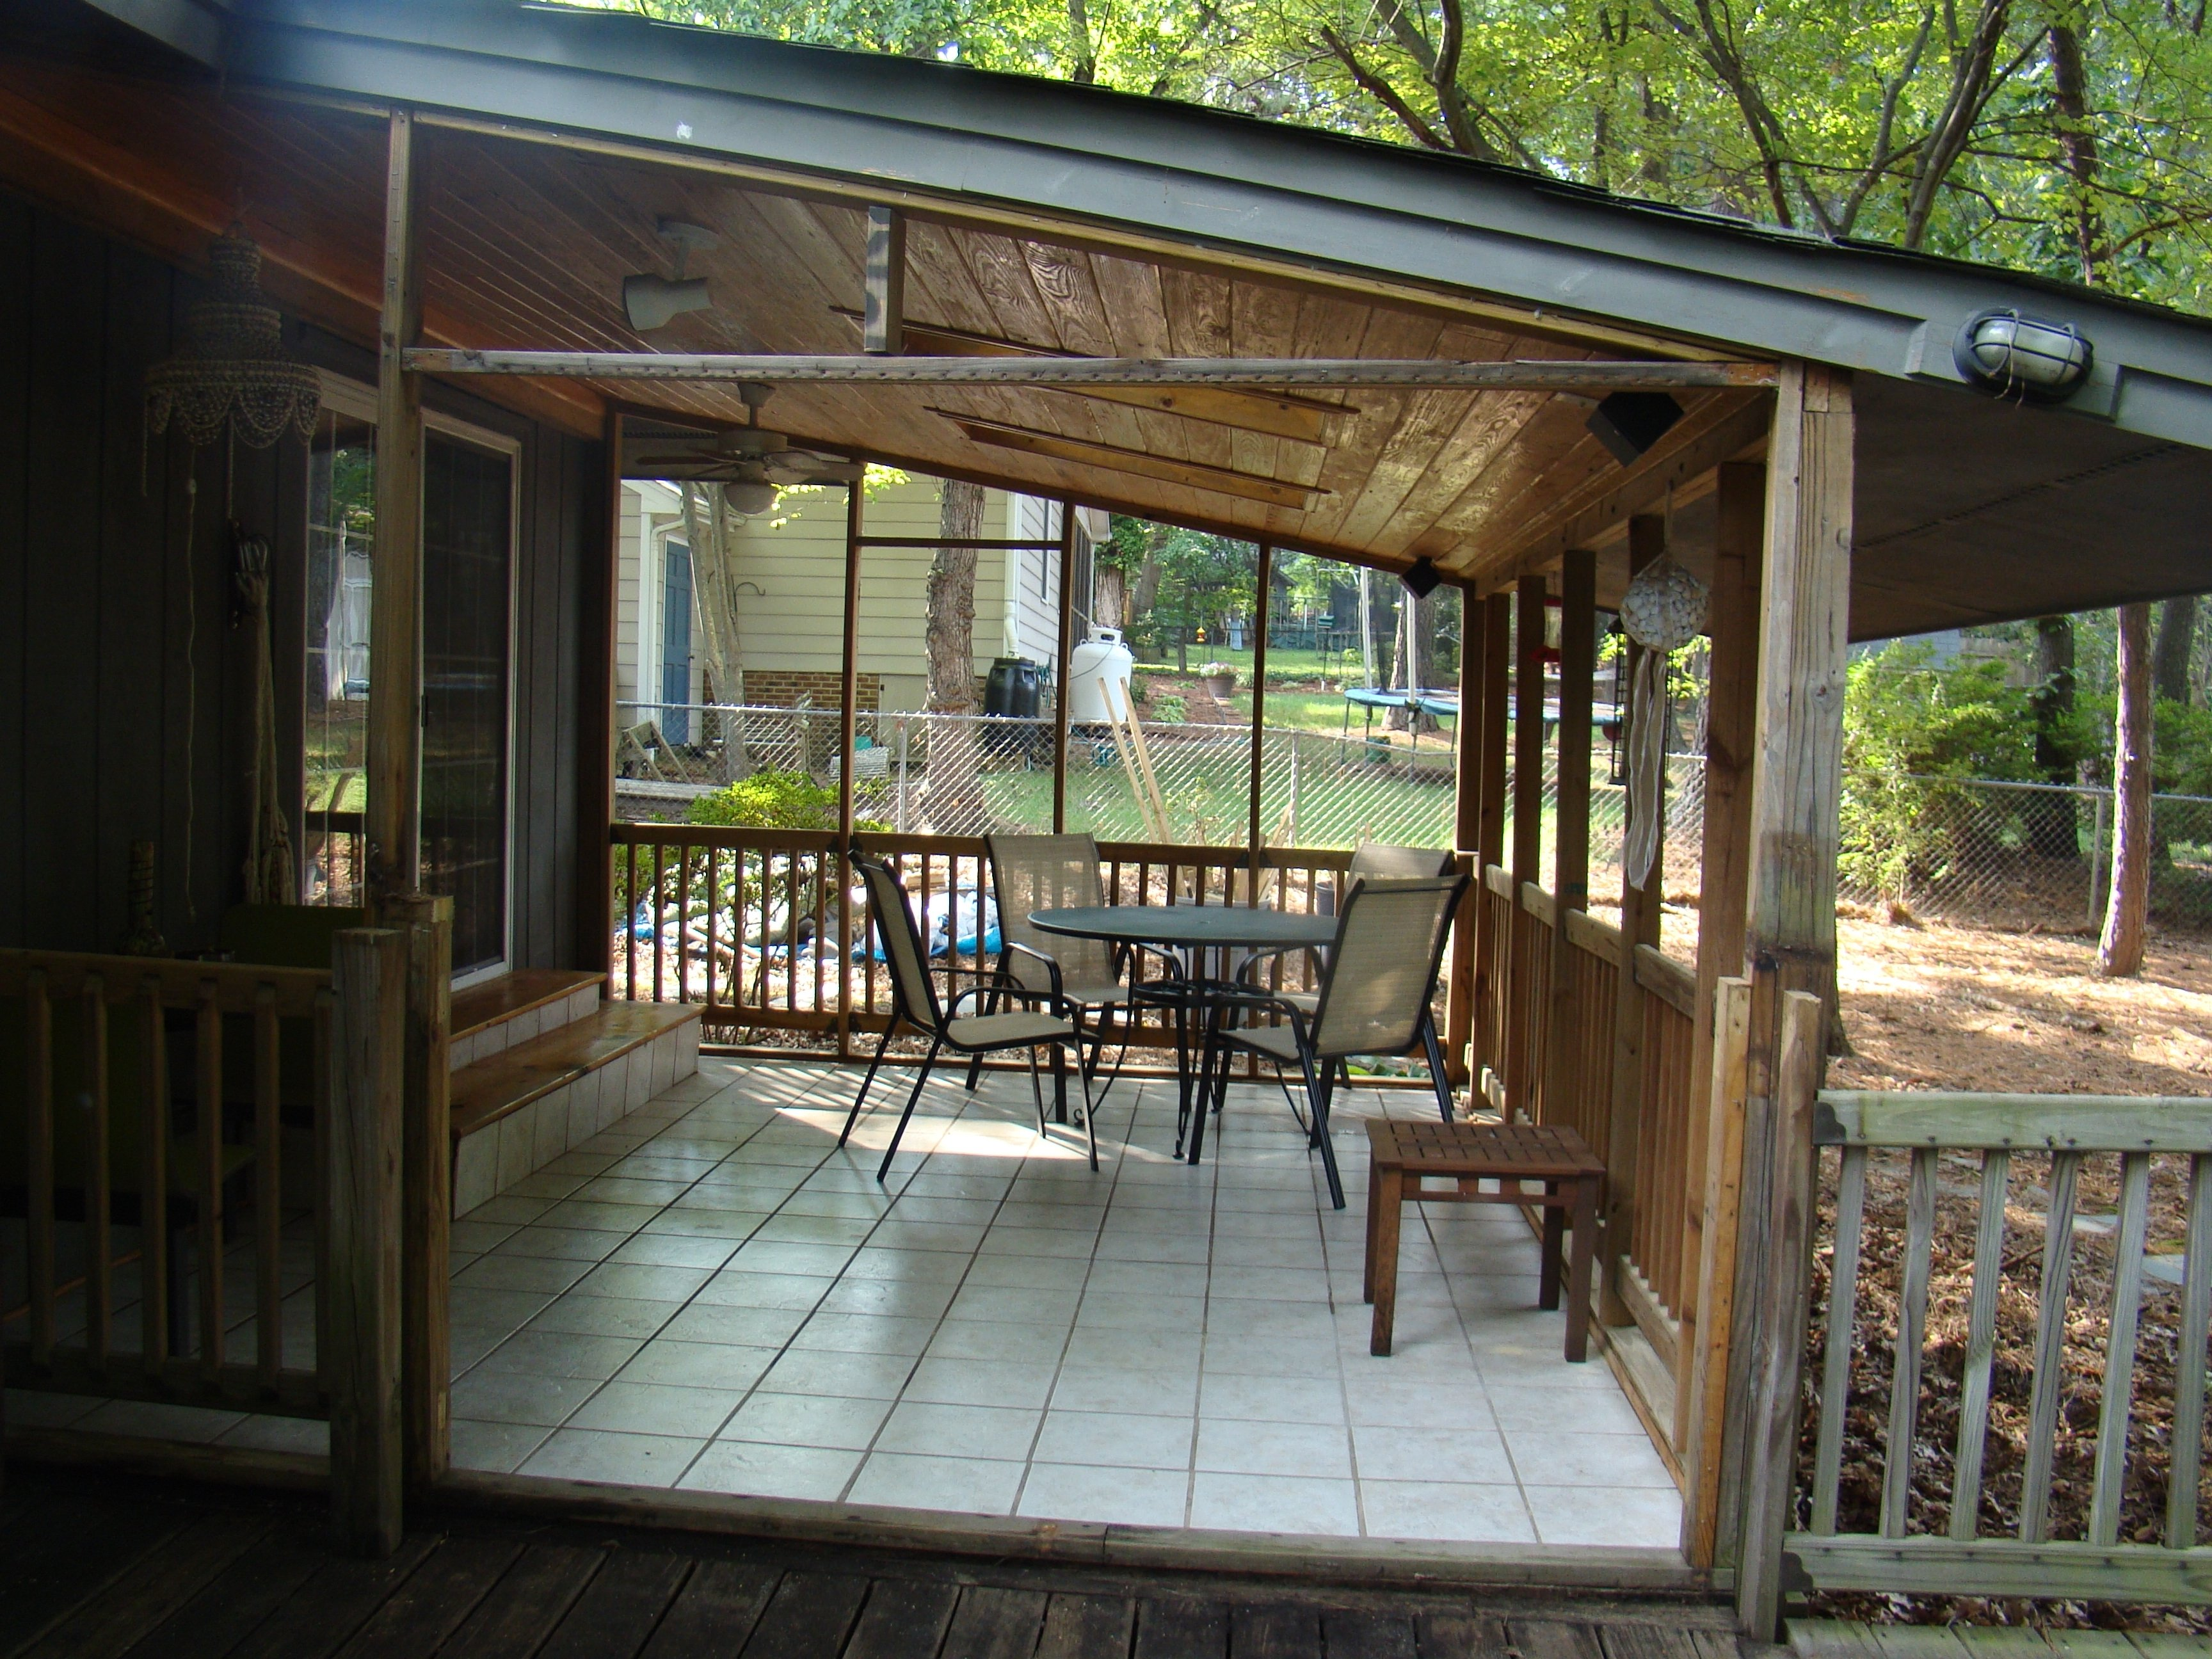 10 Best Back Porch Ideas For Houses new back porch looking dma homes 44414 2021